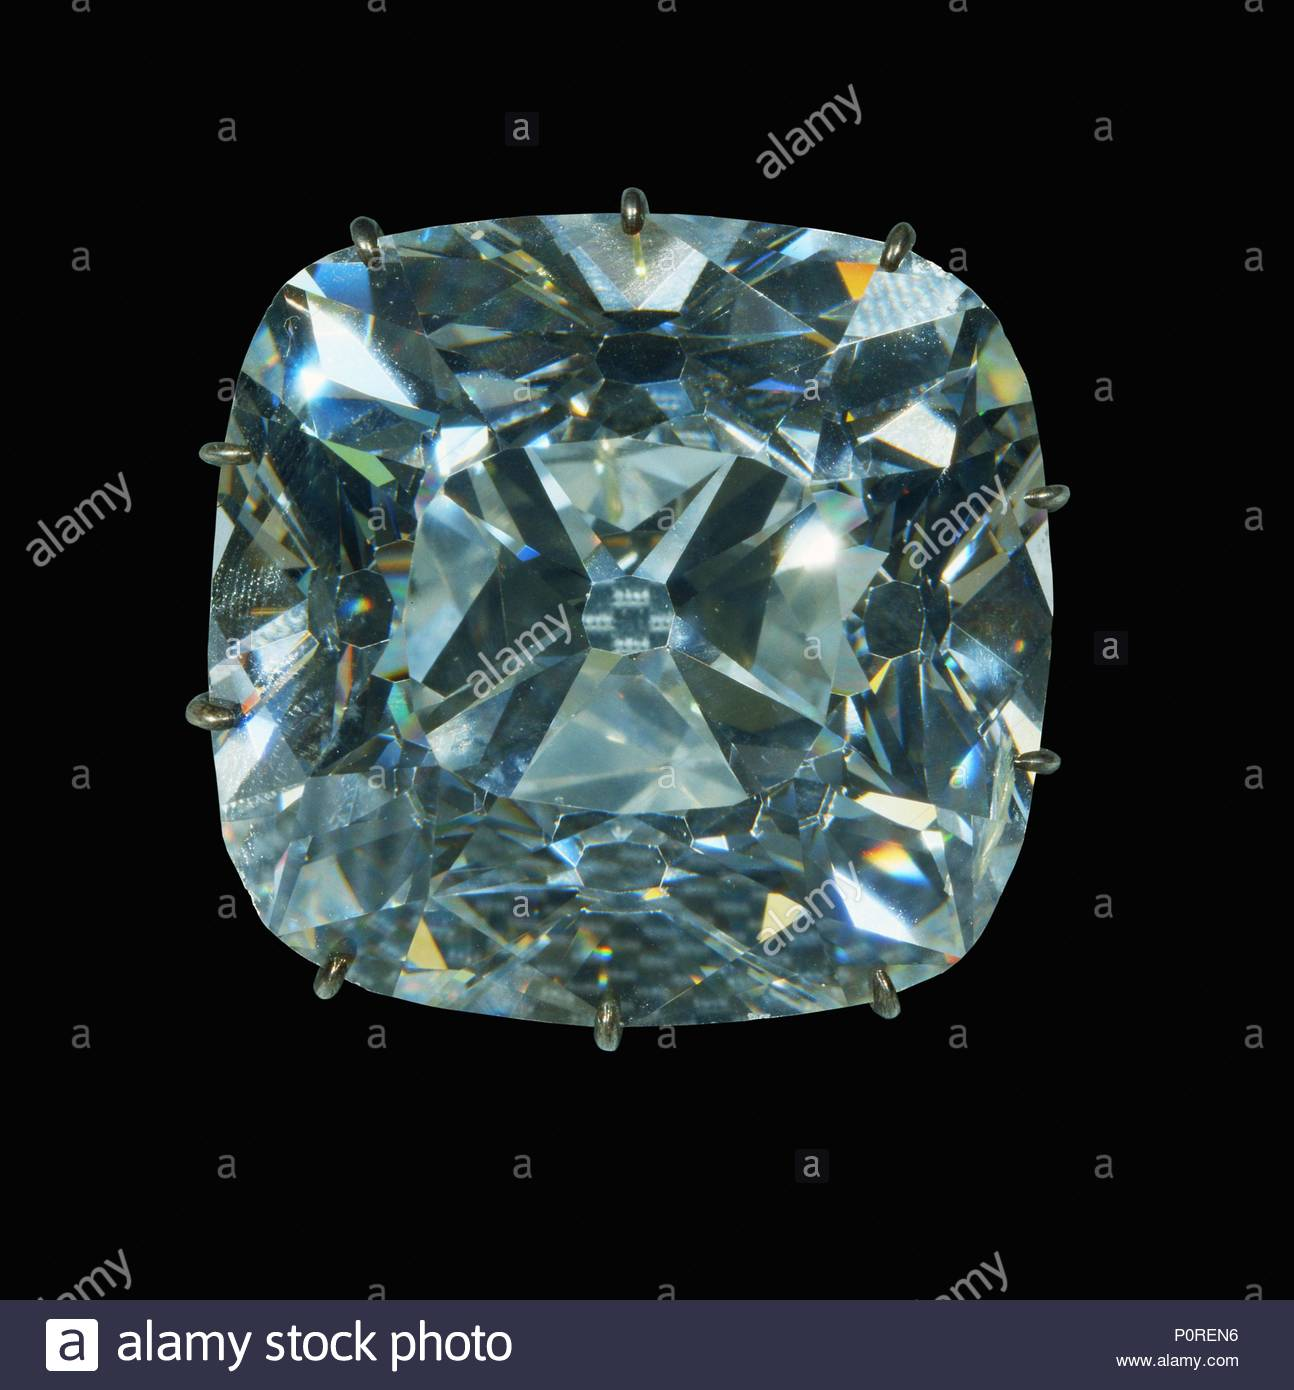 blog polishing process iia and during diamonds cutting perfect diamond the ahluwalia type carat reena